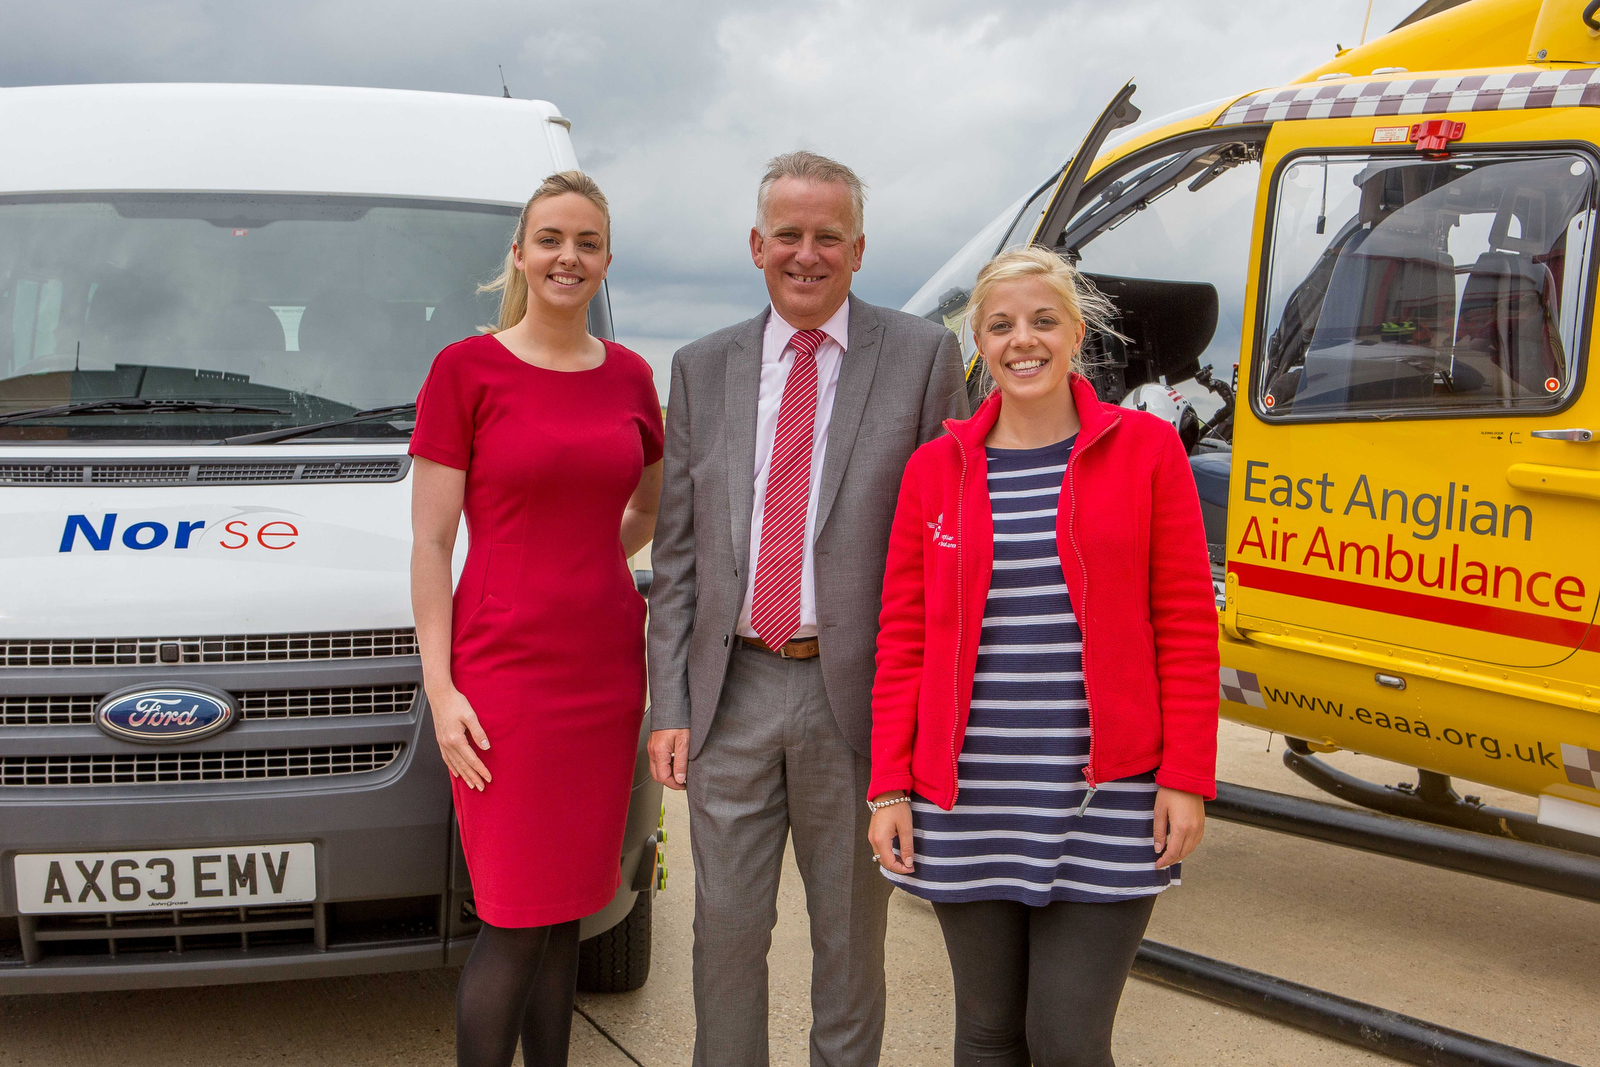 Commercial Photography Norfolk - East Anglian Air Ambulance